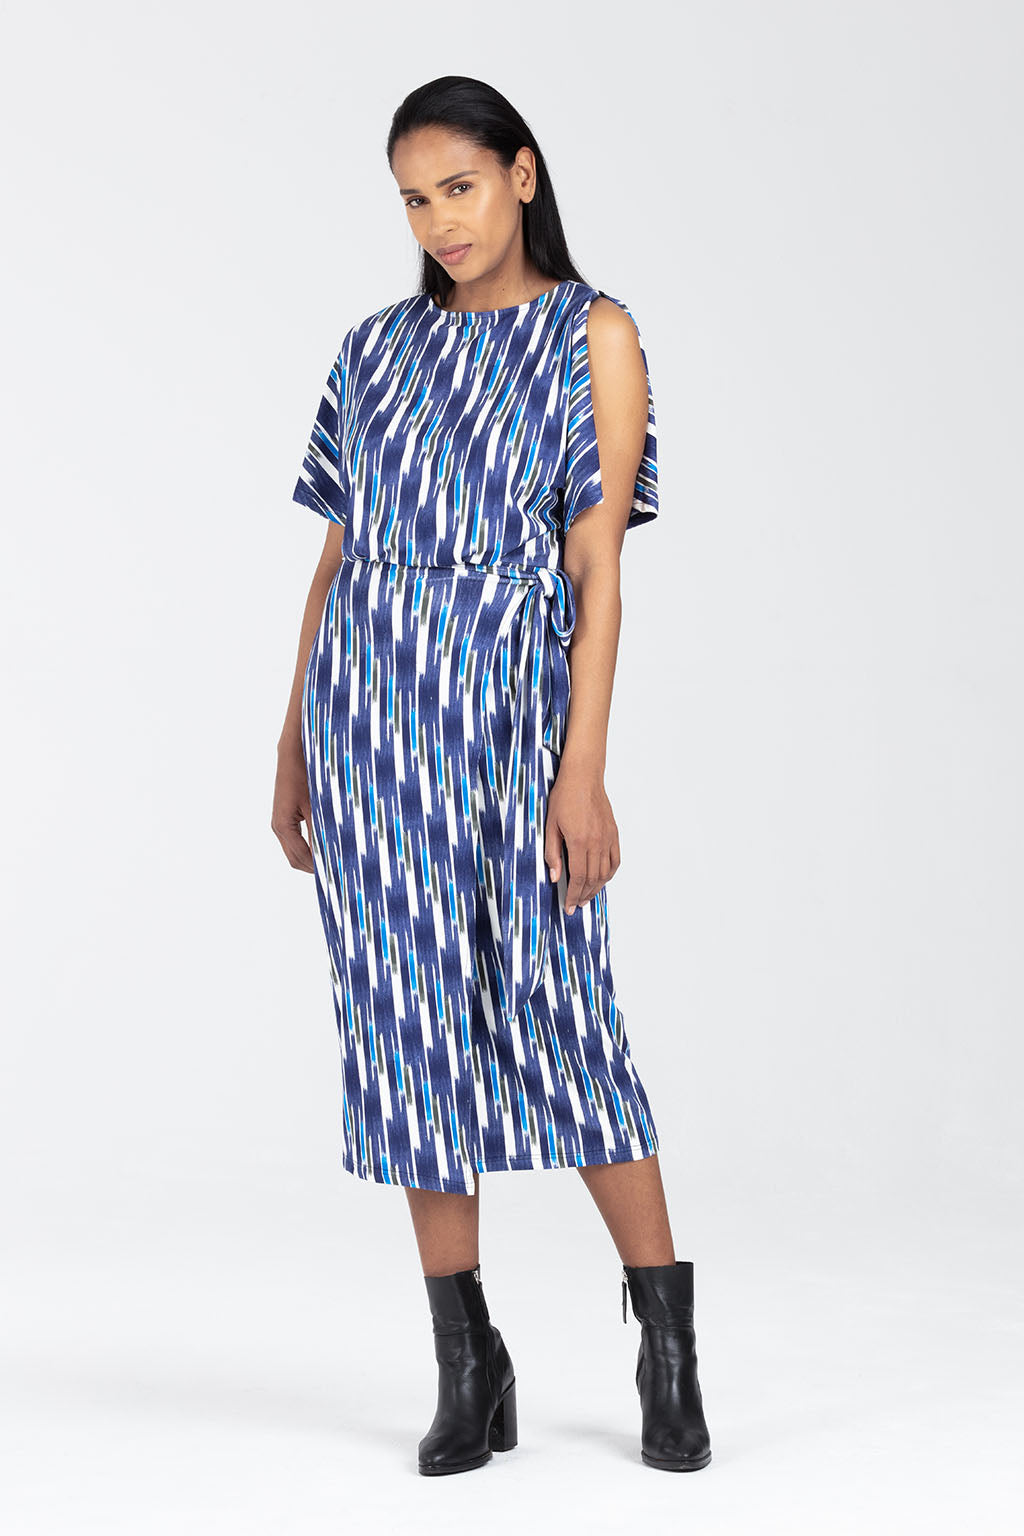 Breastfeeding Dress, Wrap Style in Verical Stripey - Amelia by Sarka London - Front View